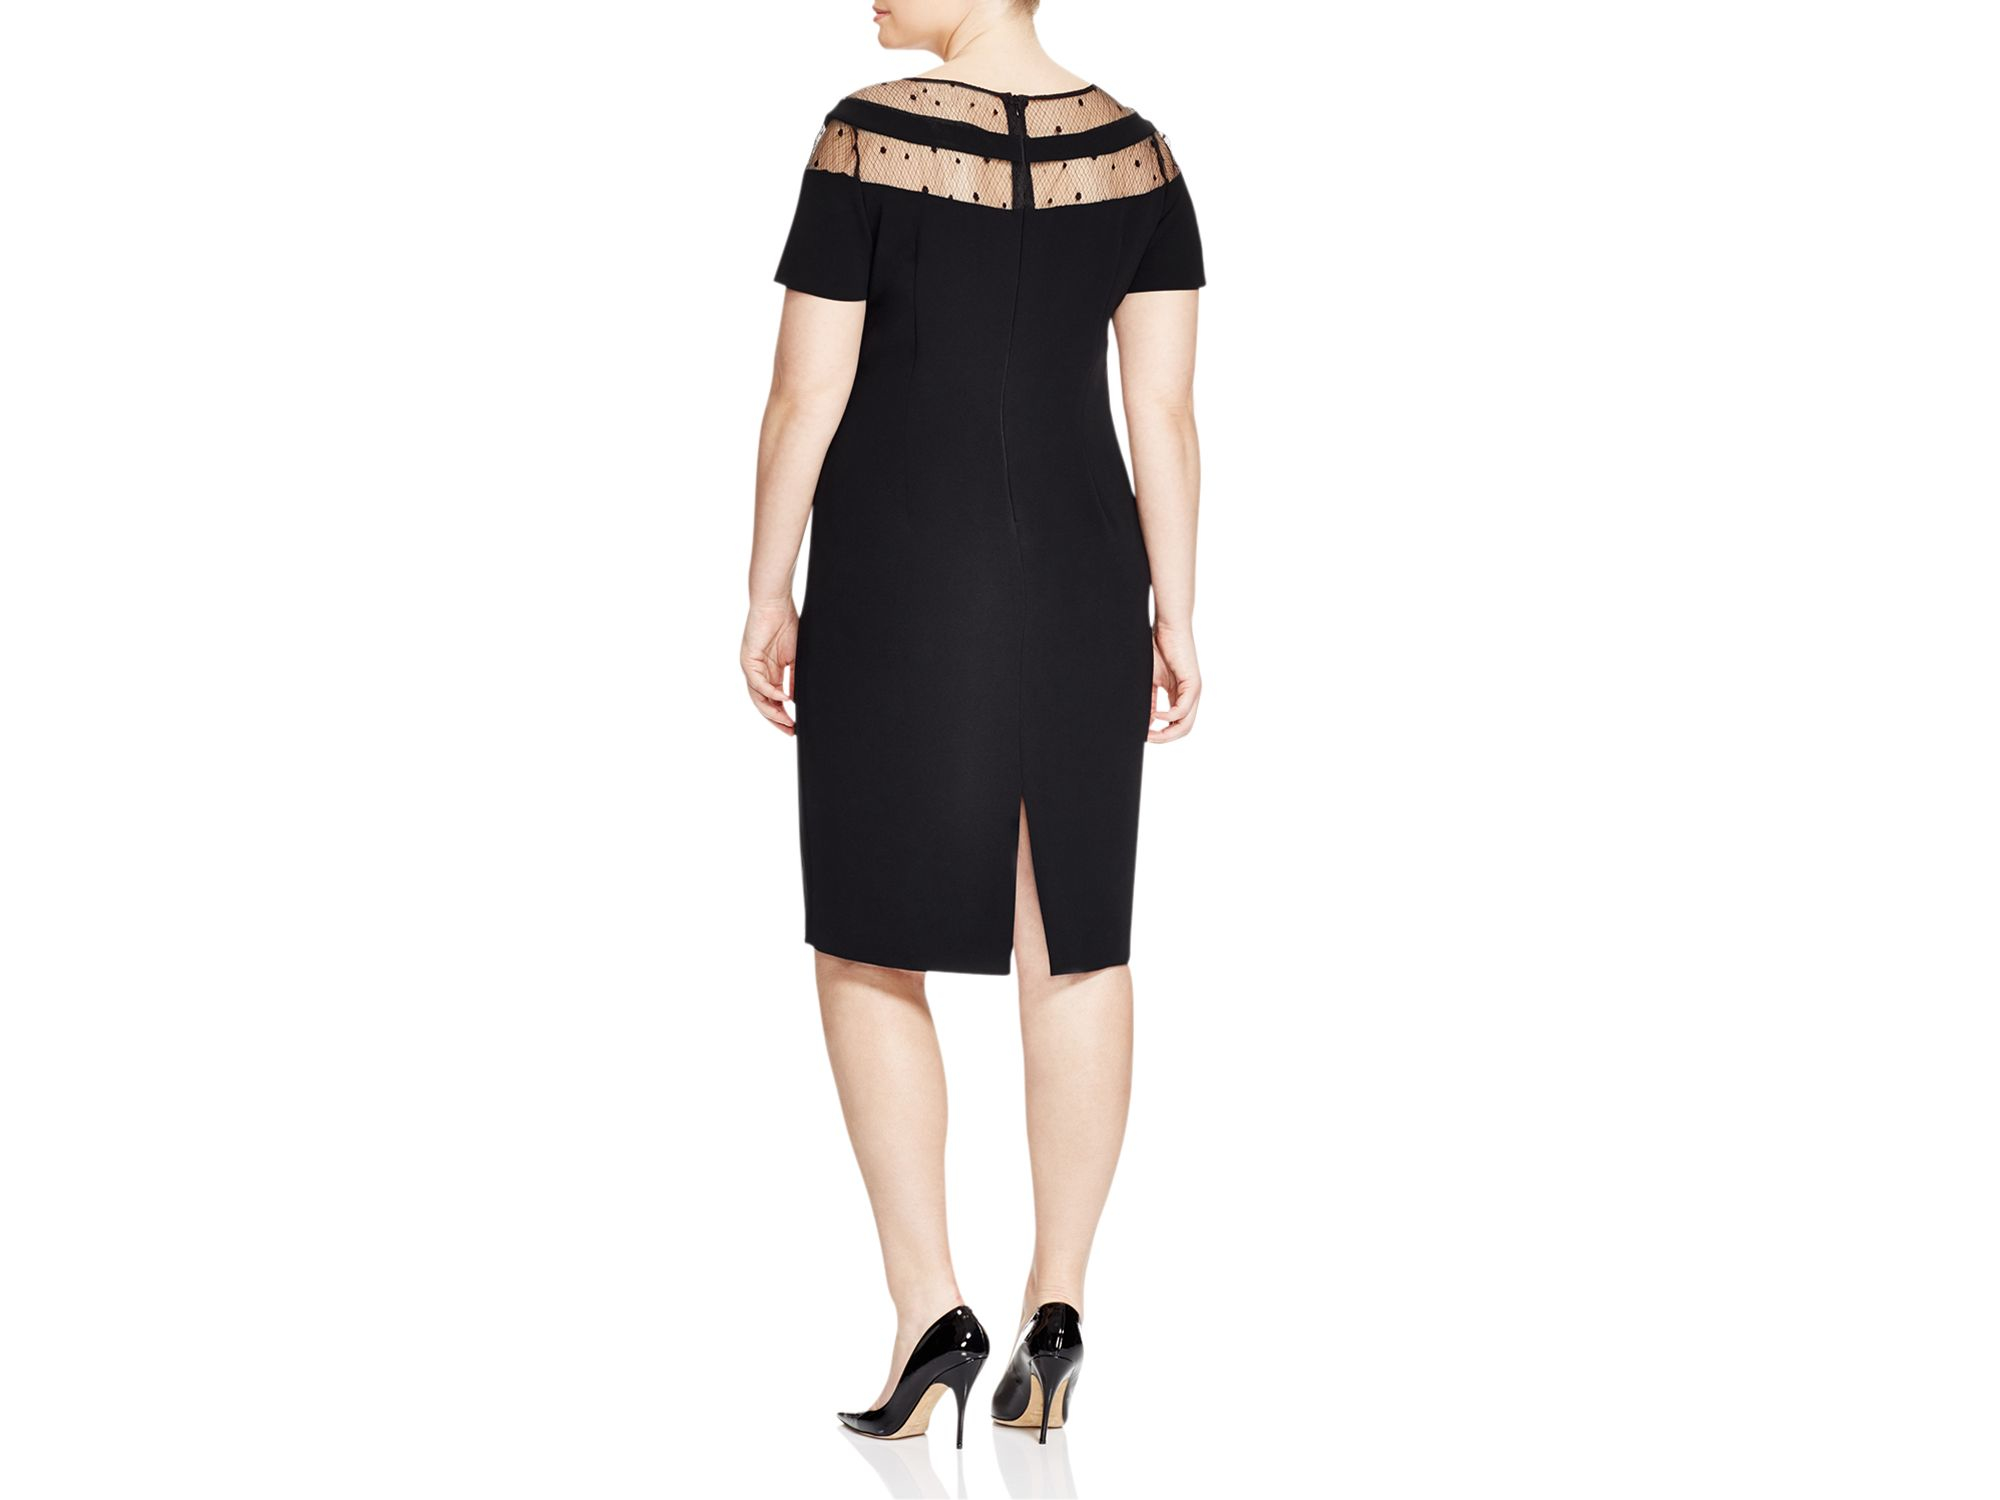 Lyst marina rinaldi danae illusion dress in black for Marina rinaldi wedding dresses